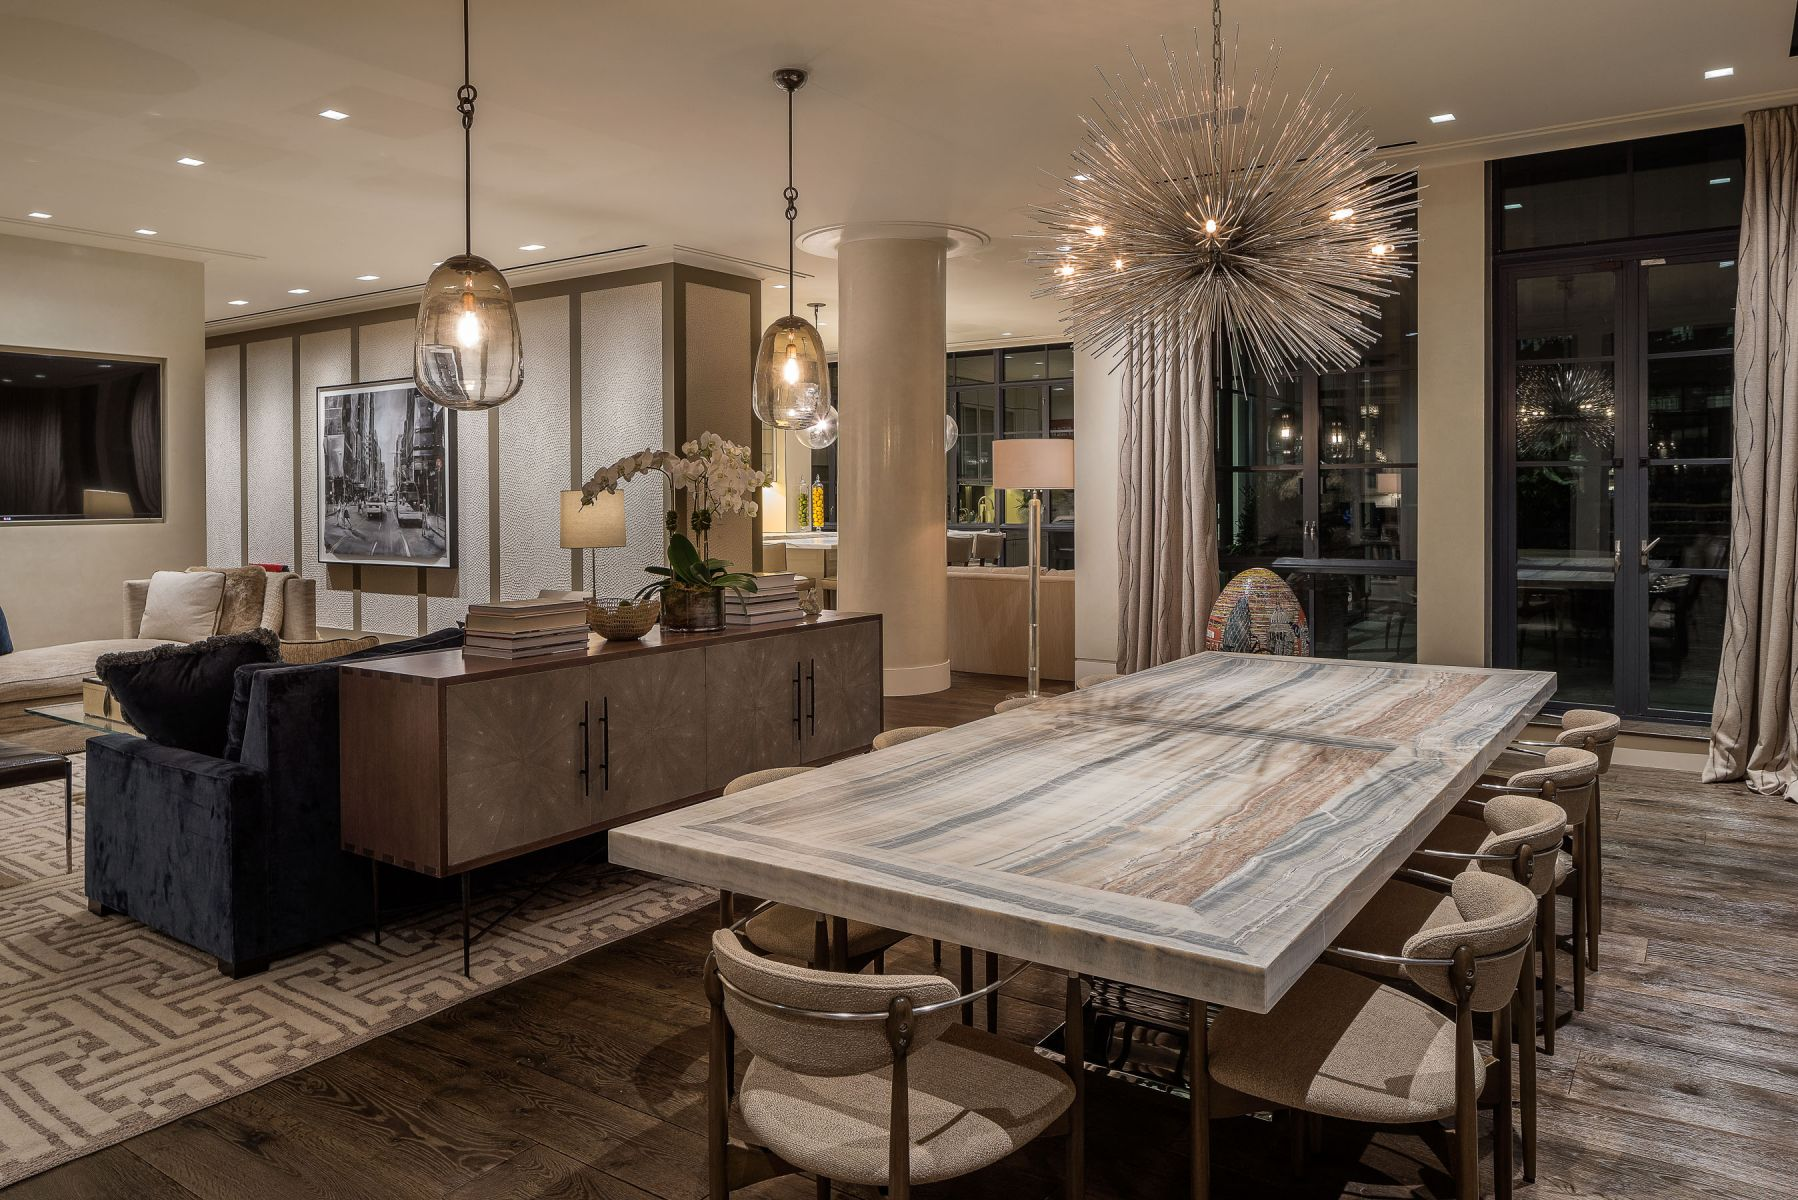 Change Your Luxury Interior Design With This Lighting Inspirations luxury interior design Change Your Luxury Interior Design With This Lighting Inspirations Change Your Luxury Interior Design With This Lighting Inspirations 2 1